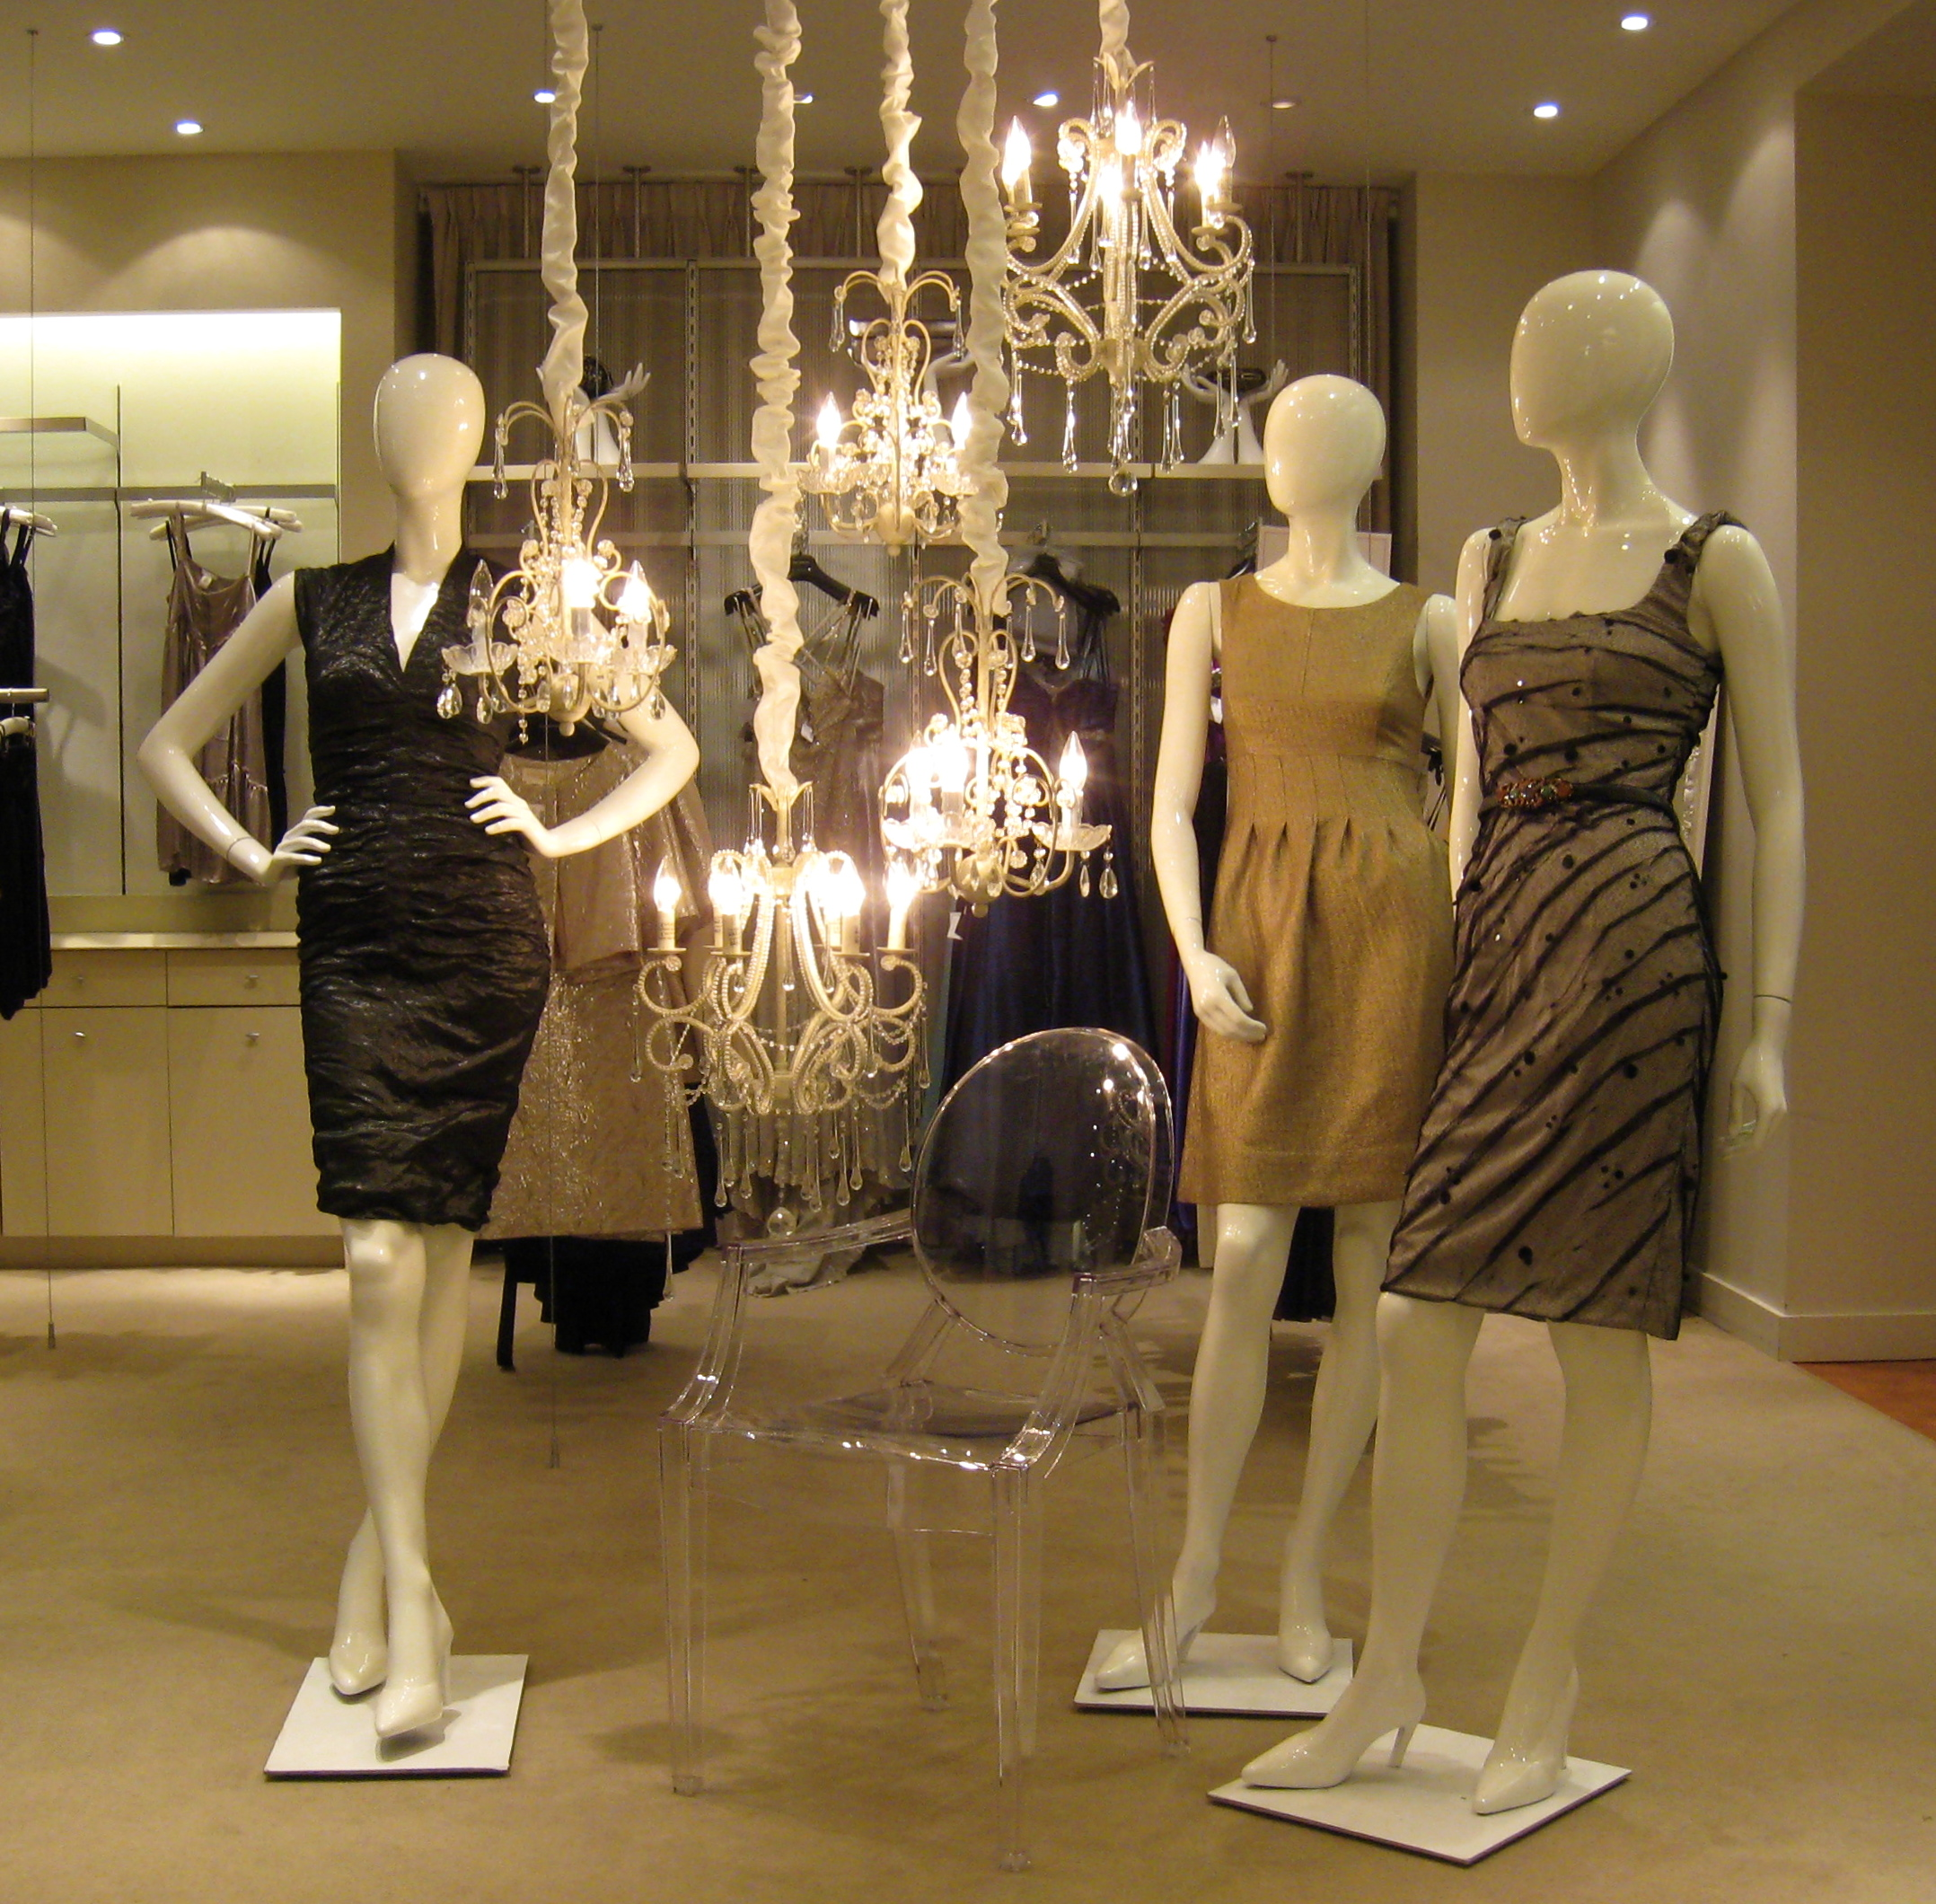 Artjuna Fashion Store